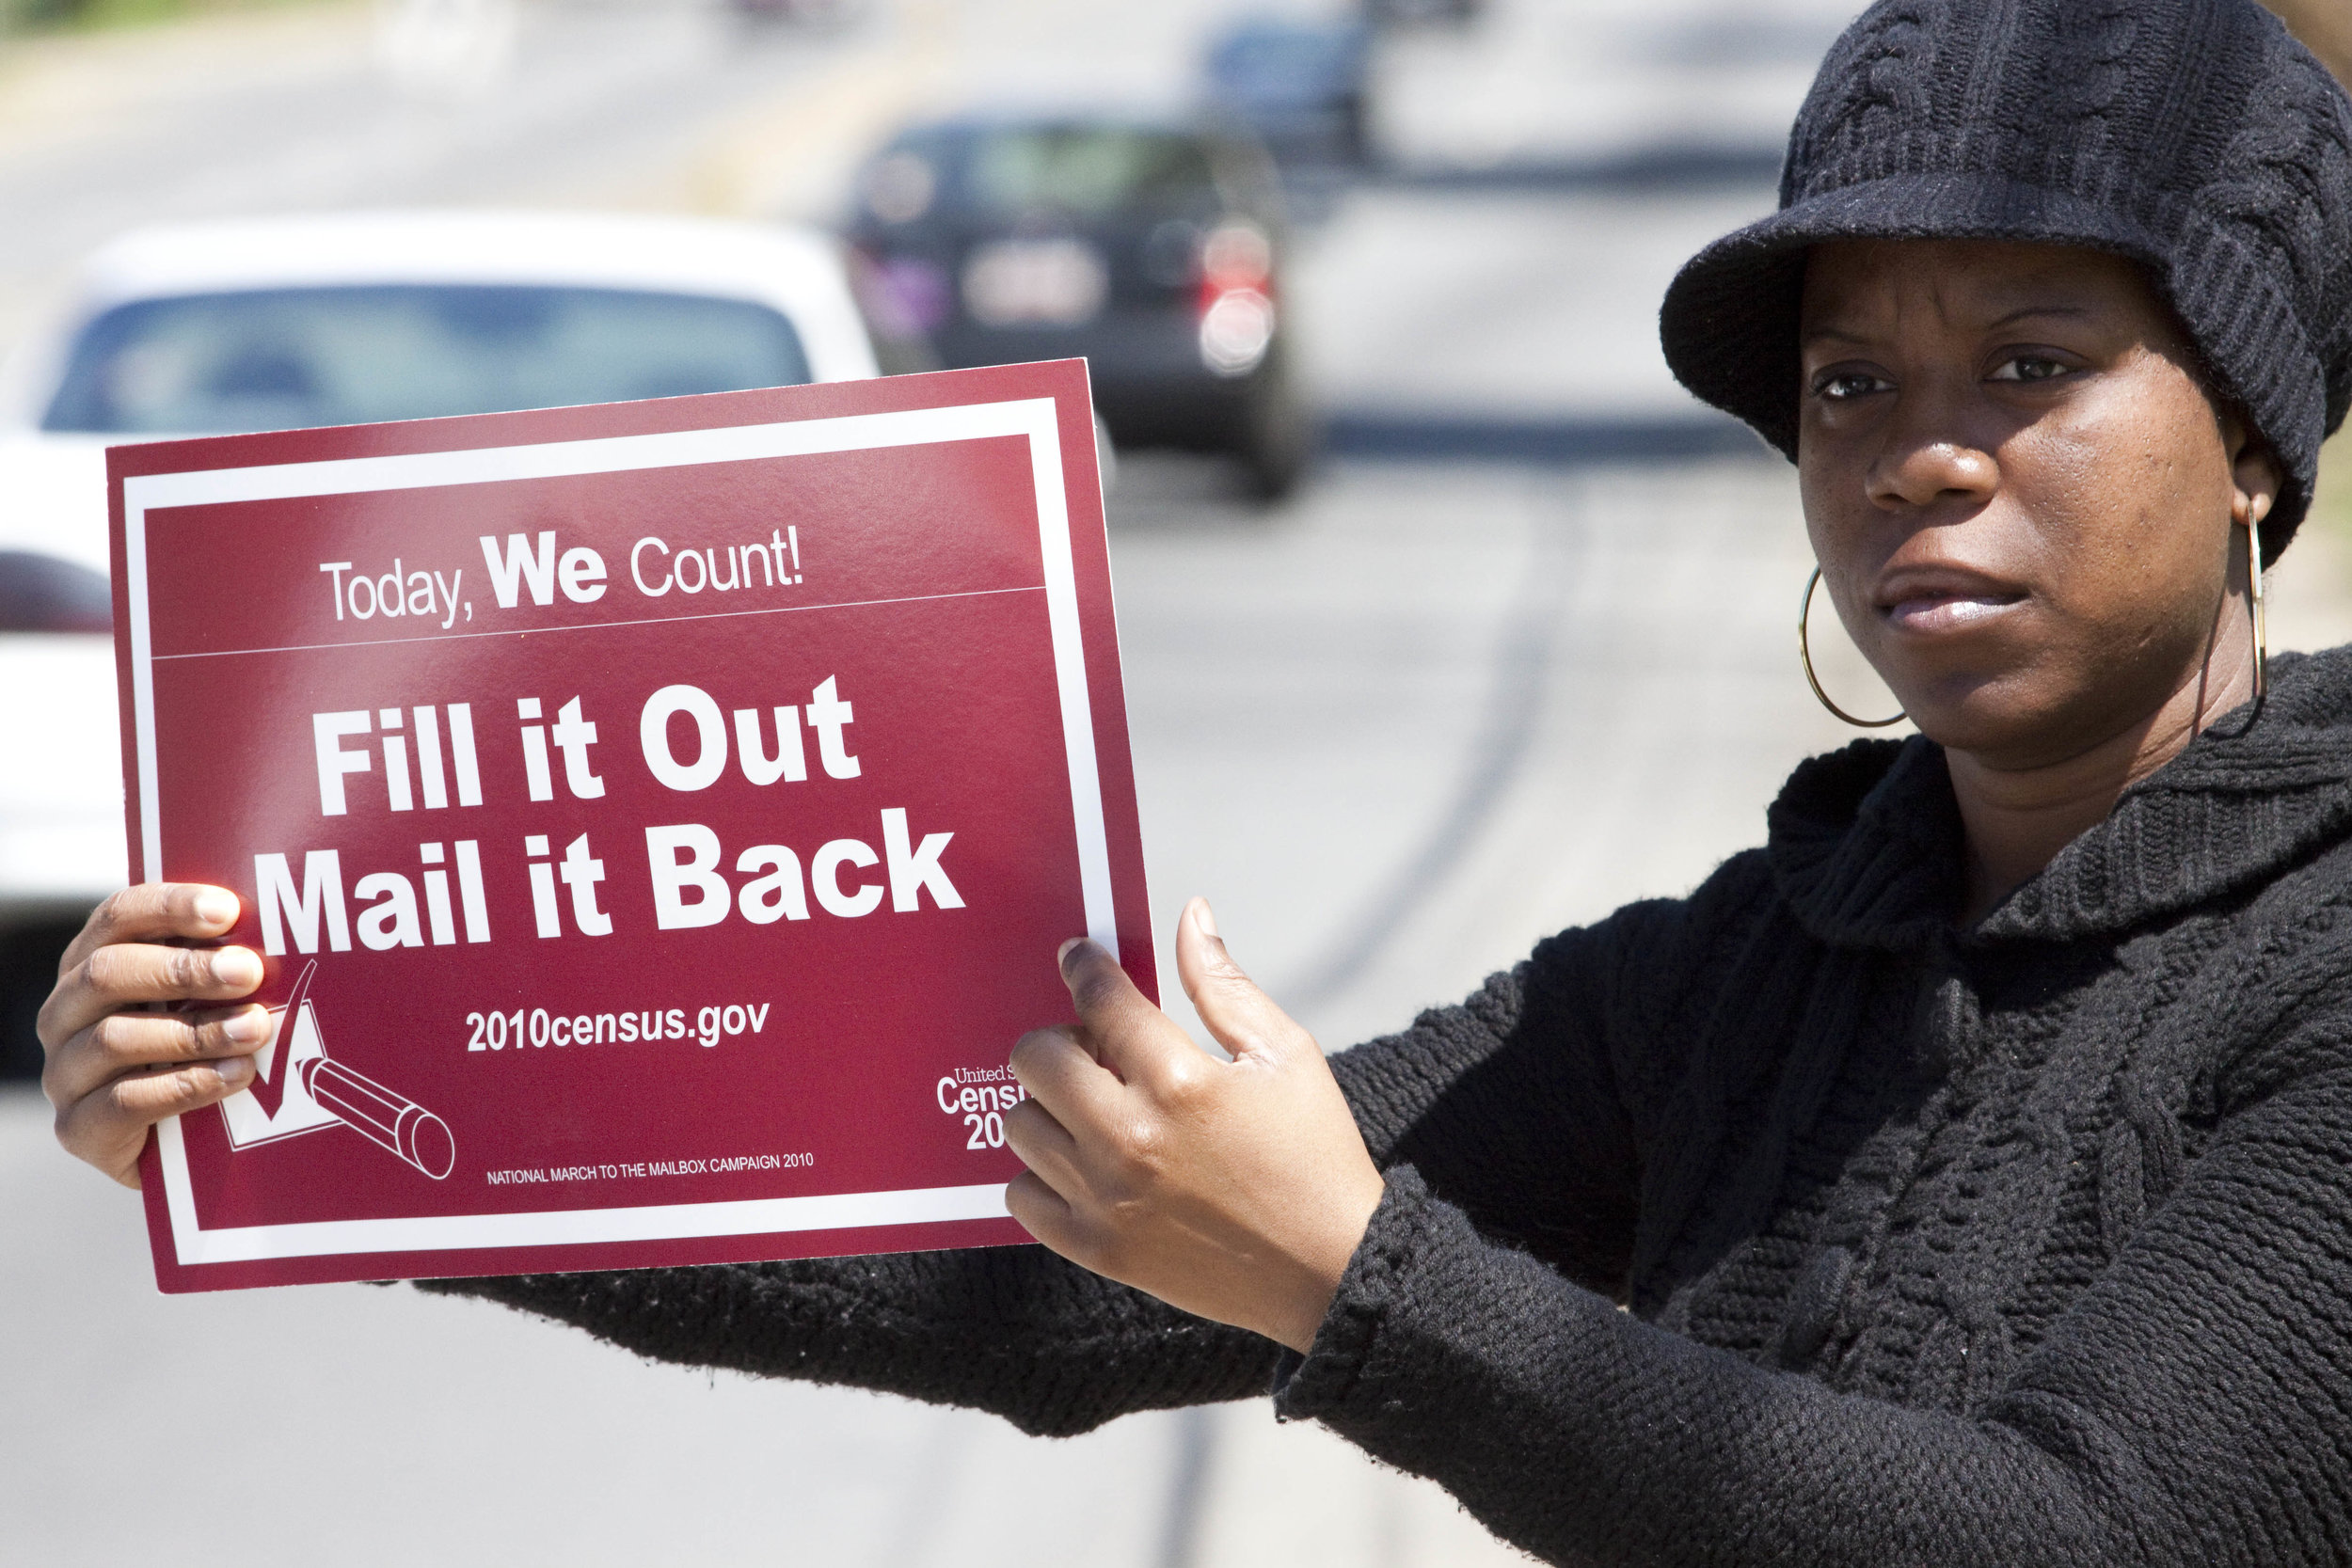 Shanda Burrell, 32, holds a sign encouraging people to complete their 2010 census. AP photo by Jason E. Miczek